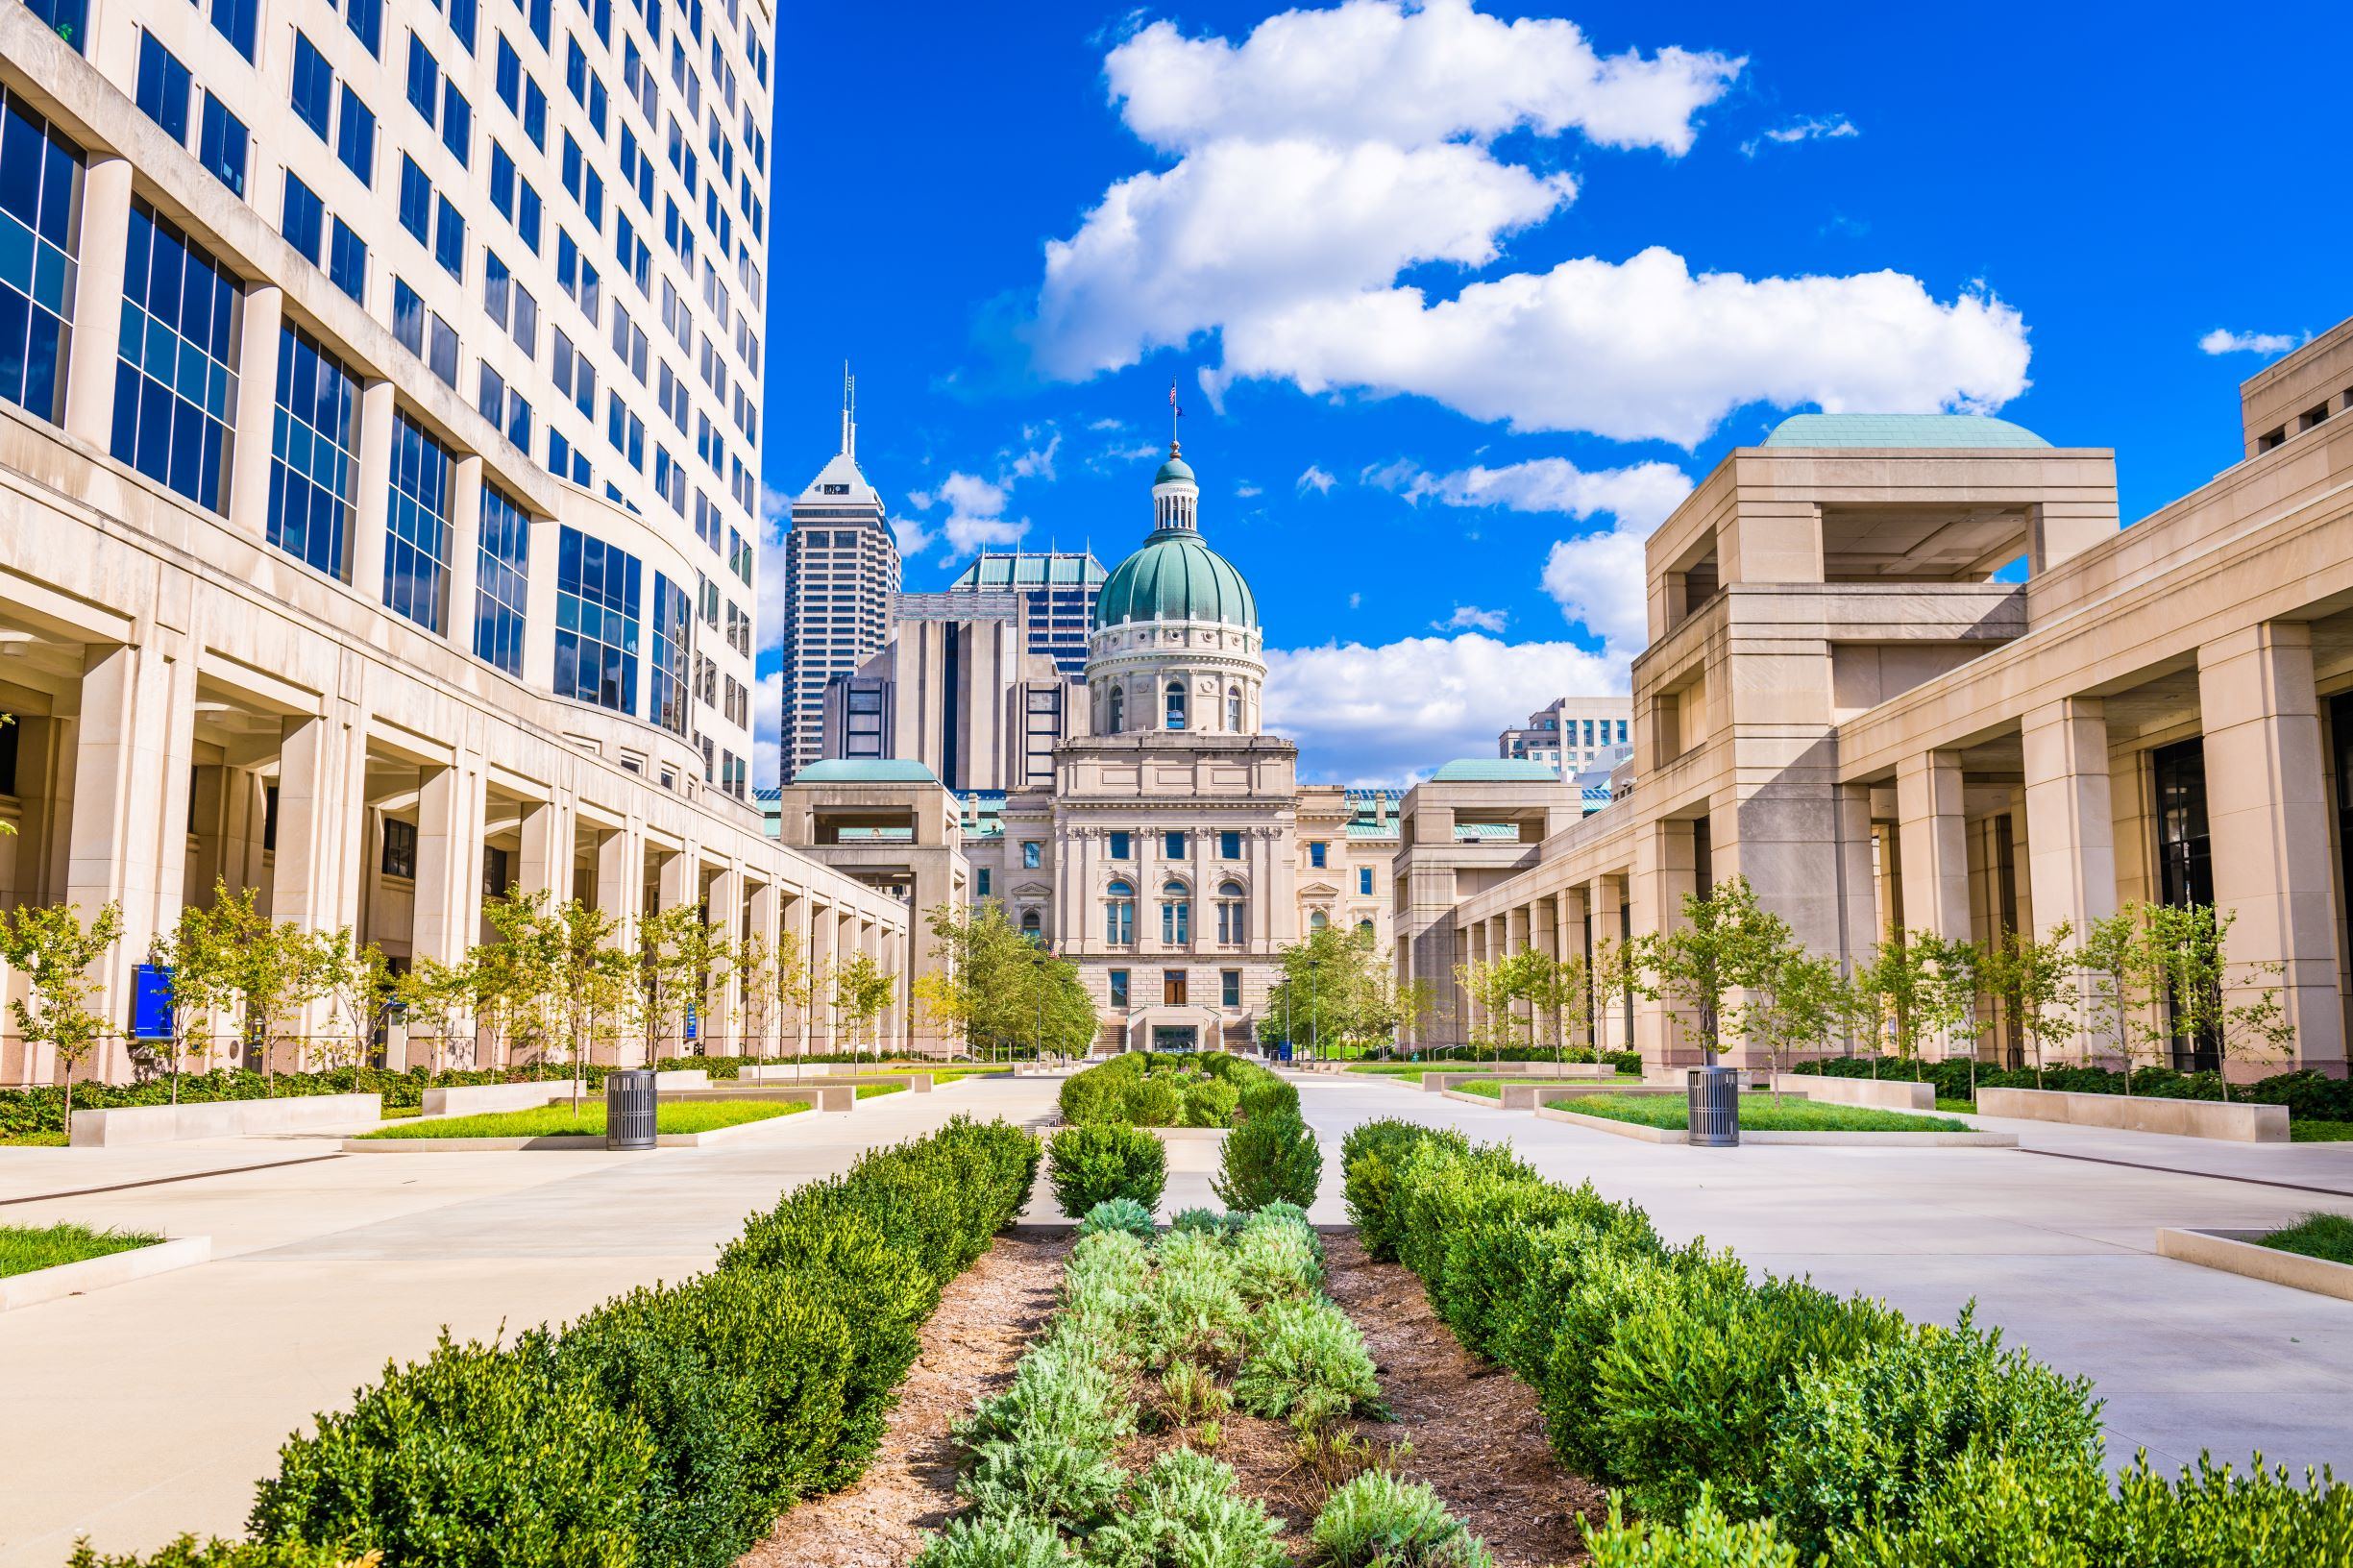 The Indiana State Capitol building is set amid beautiful landscaping. Indianapolis bail bonds can be tricky for numerous reasons, including differences in bail bonds processes as well as state laws.